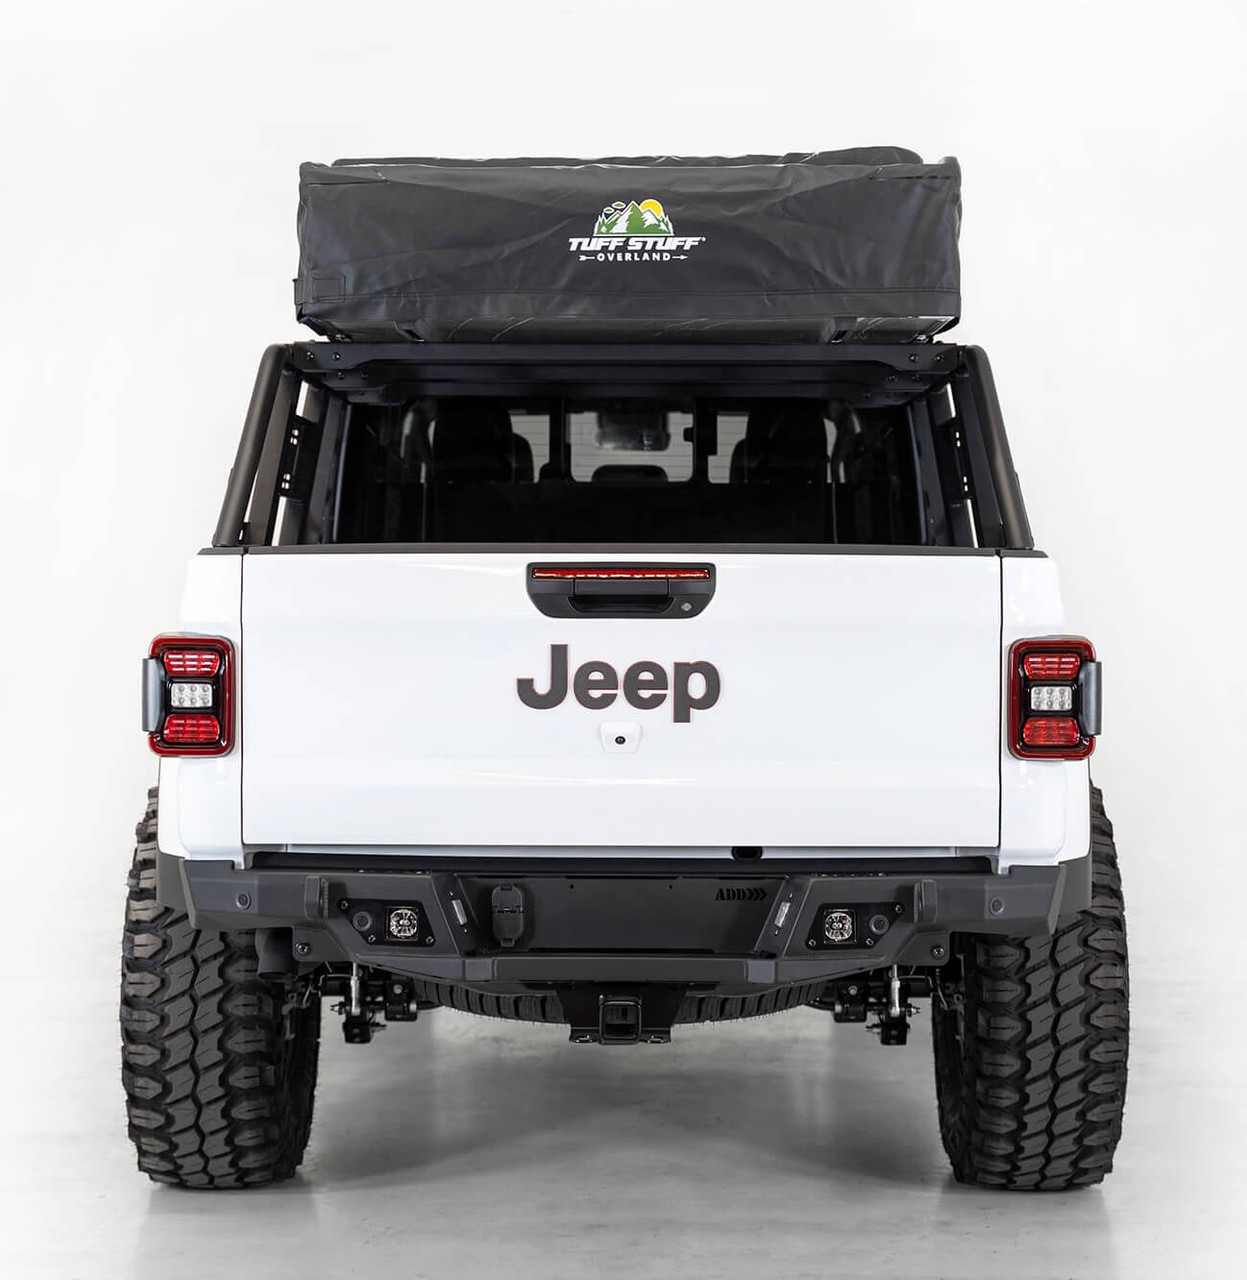 ADD Lander Overland Rack For 2020 Jeep Gladiator - C978832000103